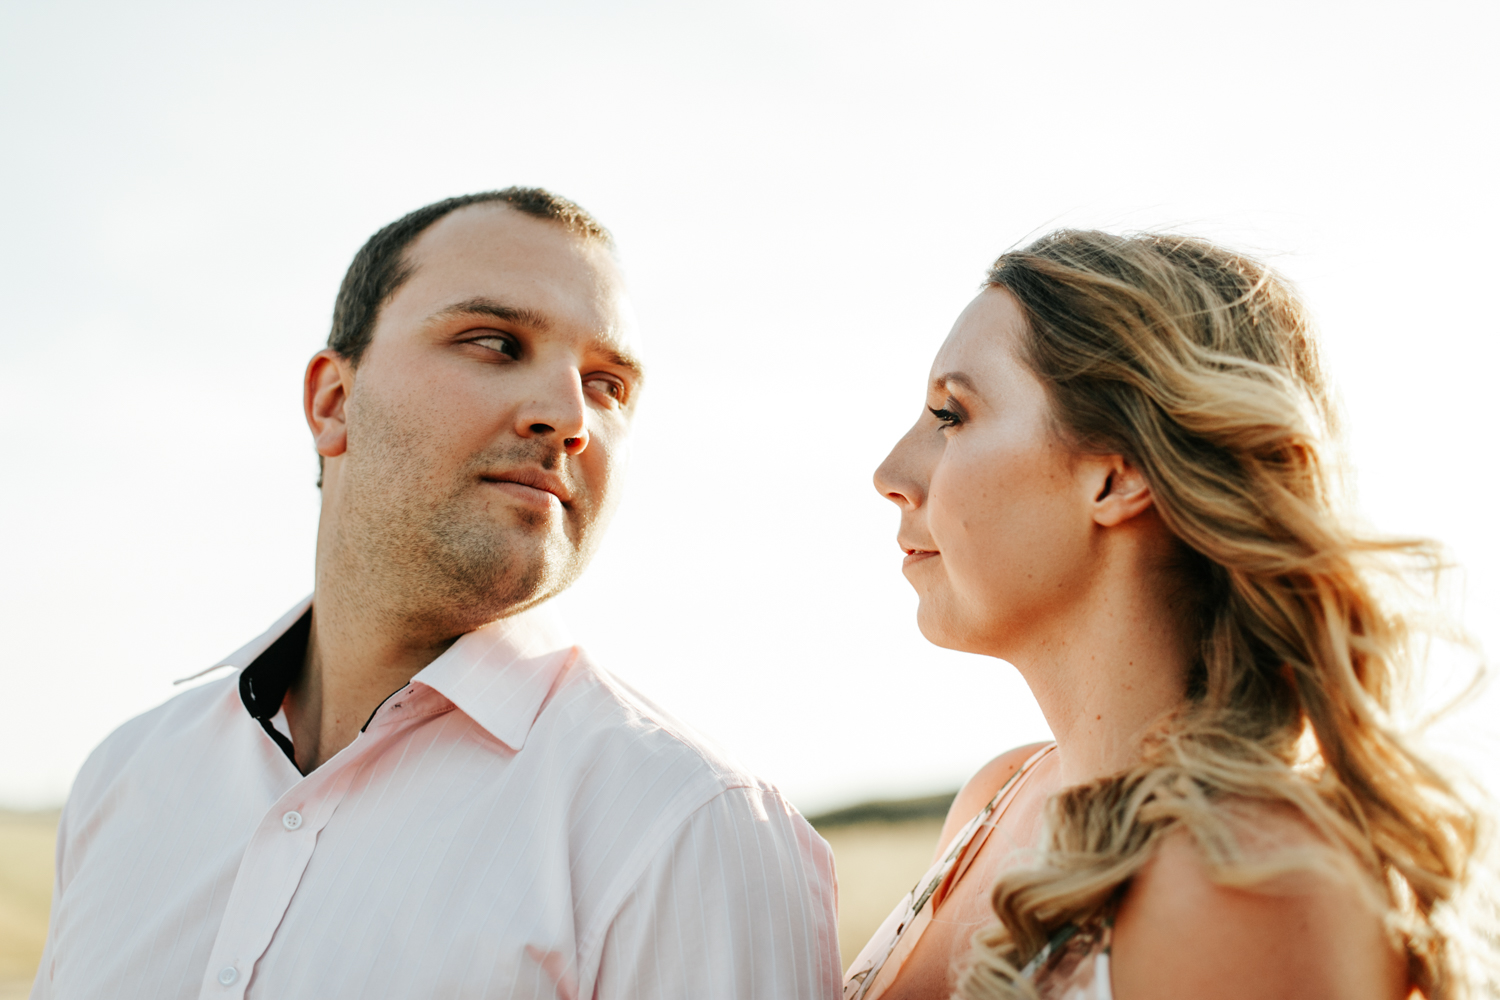 lethbridge-wedding-photographer-love-and-be-loved-photography-katie-kelli-engagement-picture-image-photo-6.jpg